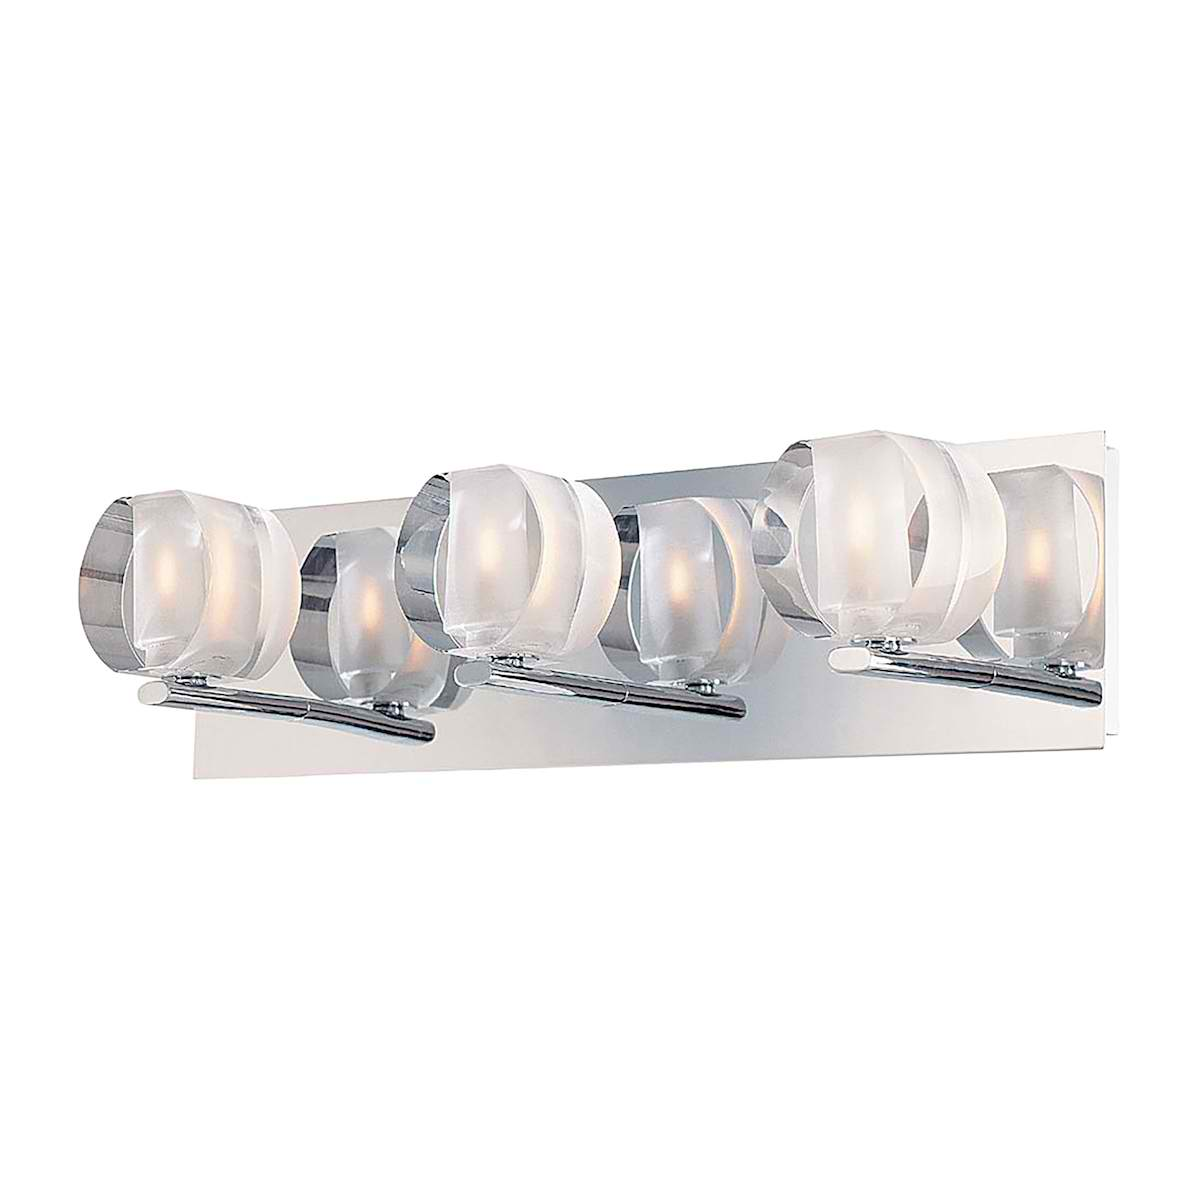 Circo Triple Lamp with Rounded Inside Frosted Crystal Glass / Chrome finish